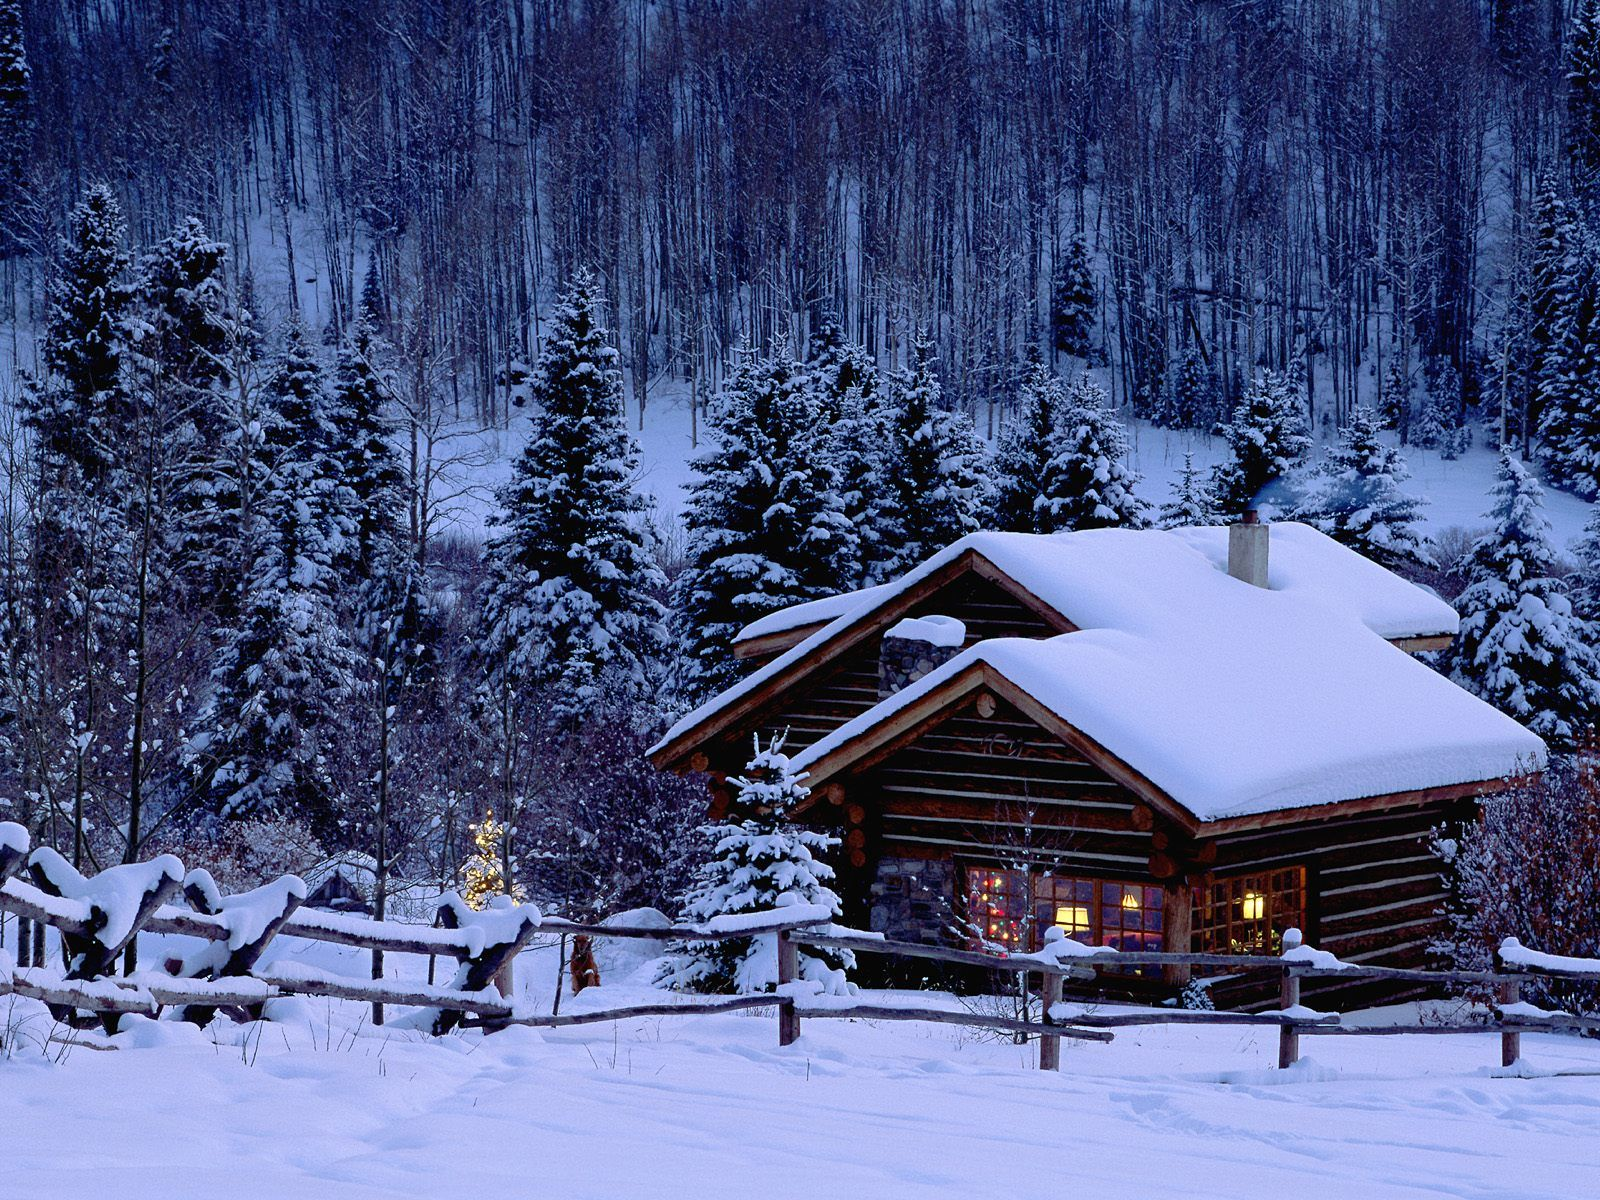 Winter Backgrounds Marketing Free Winter Wallpaper And Other Nature Desktop Backgrounds Winter Cabin Cabins In The Woods Cabins And Cottages